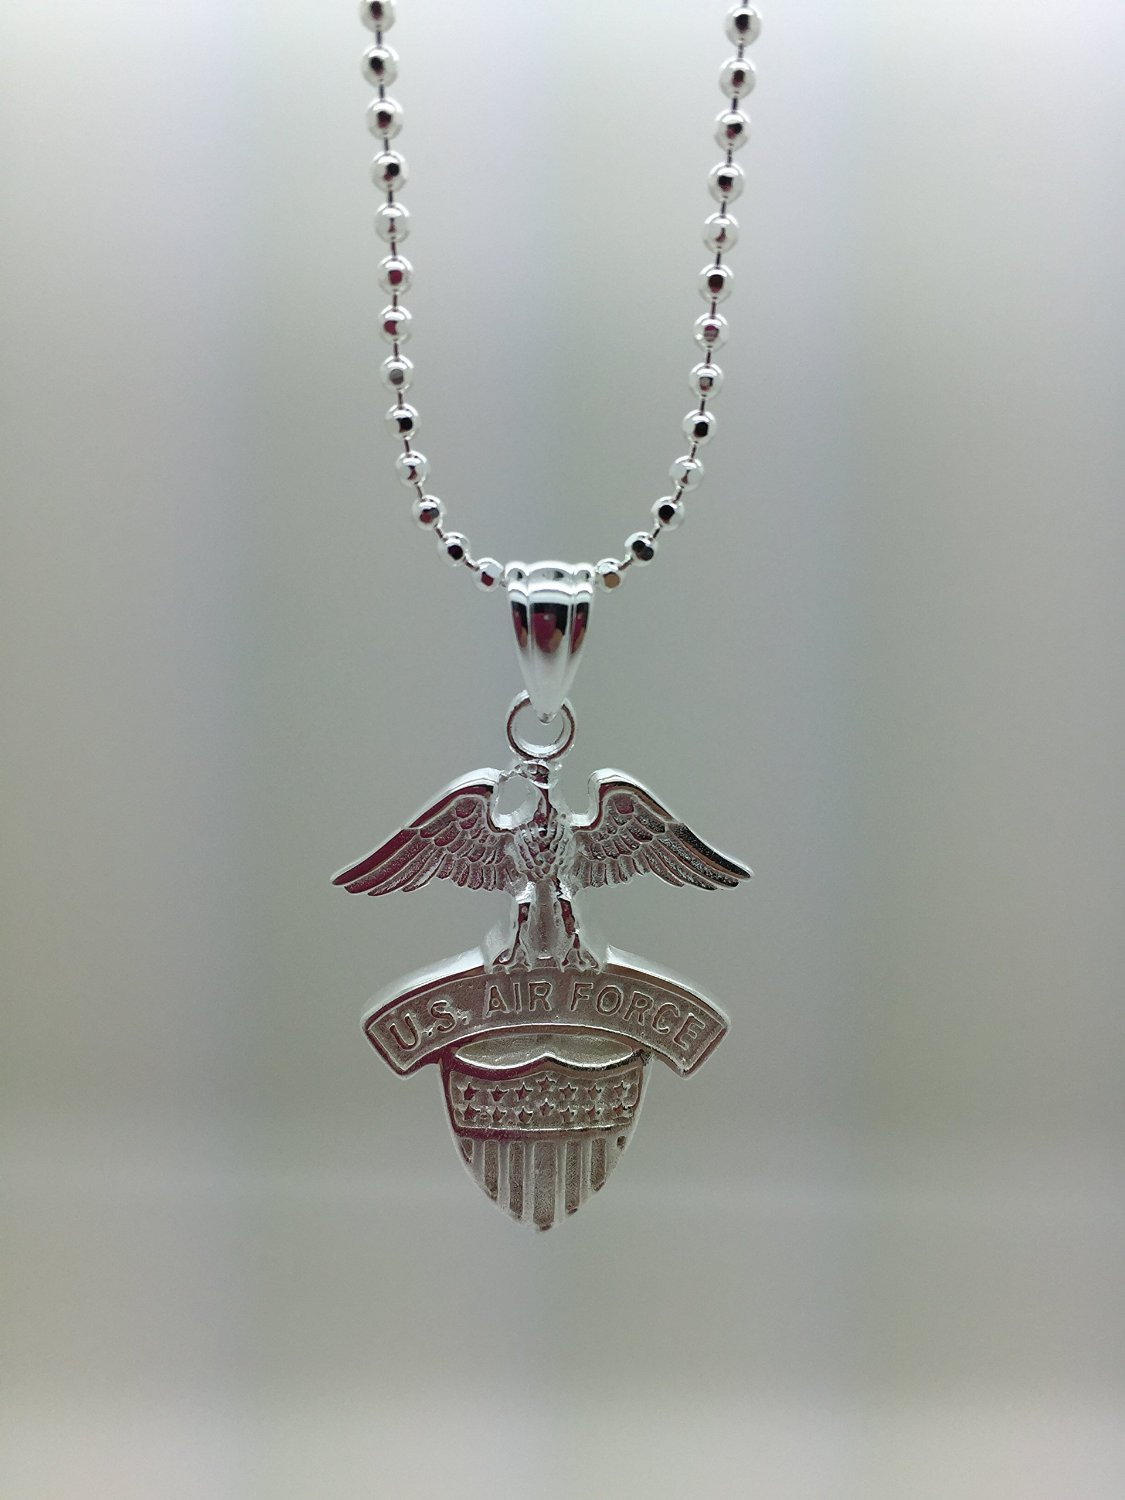 US Air Force .925 Sterling Silver Pendant For Necklace - United States Military Jewelry Pendant - USAF Charm For Chain (Silver Pendant, .925 Sterling Silver)